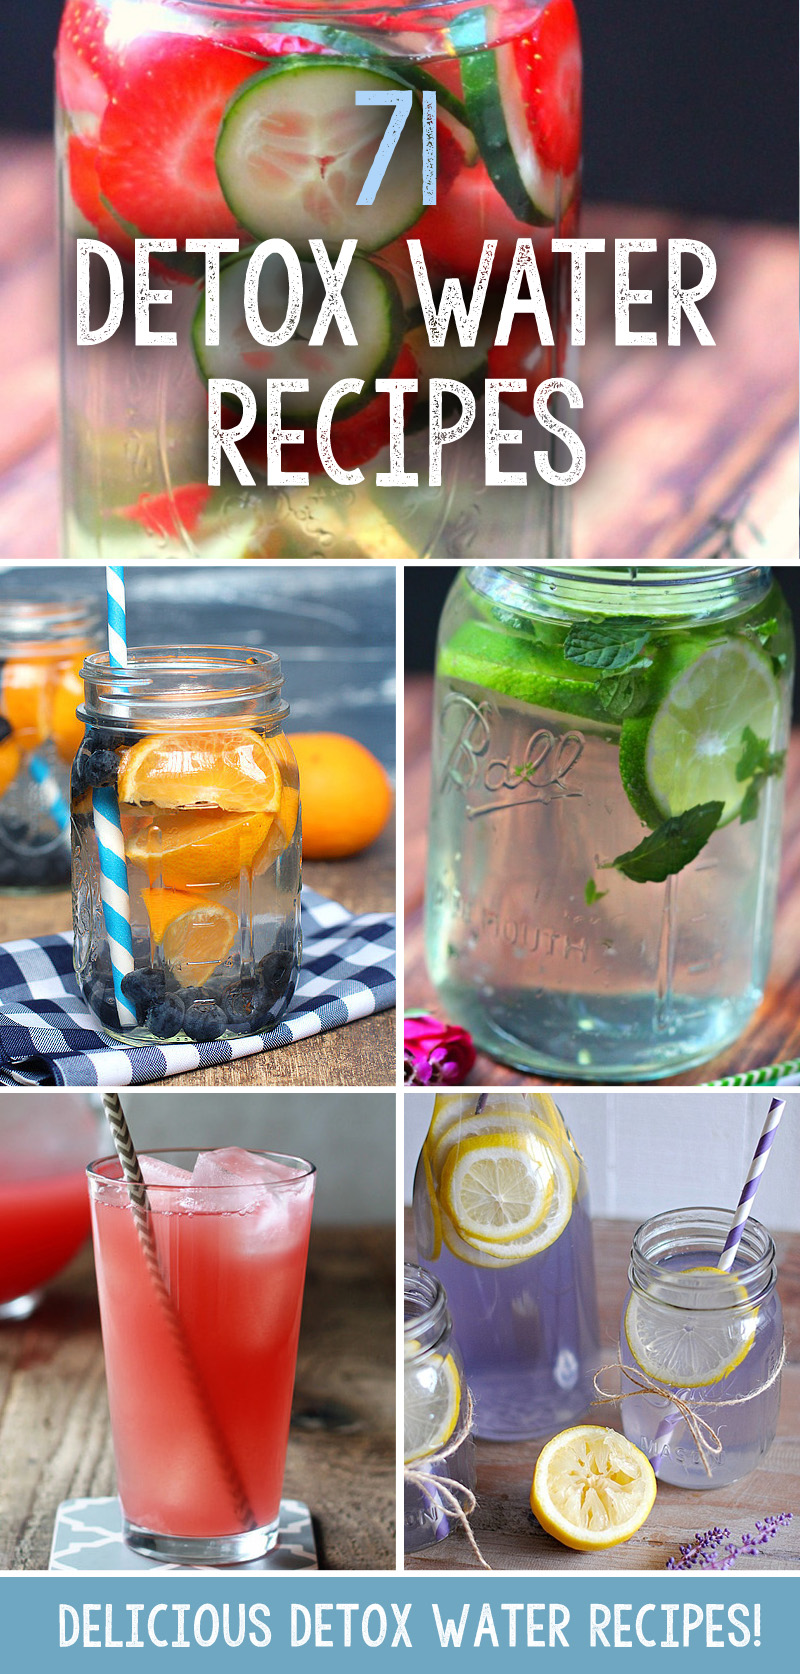 71WaterDetoxRecipes